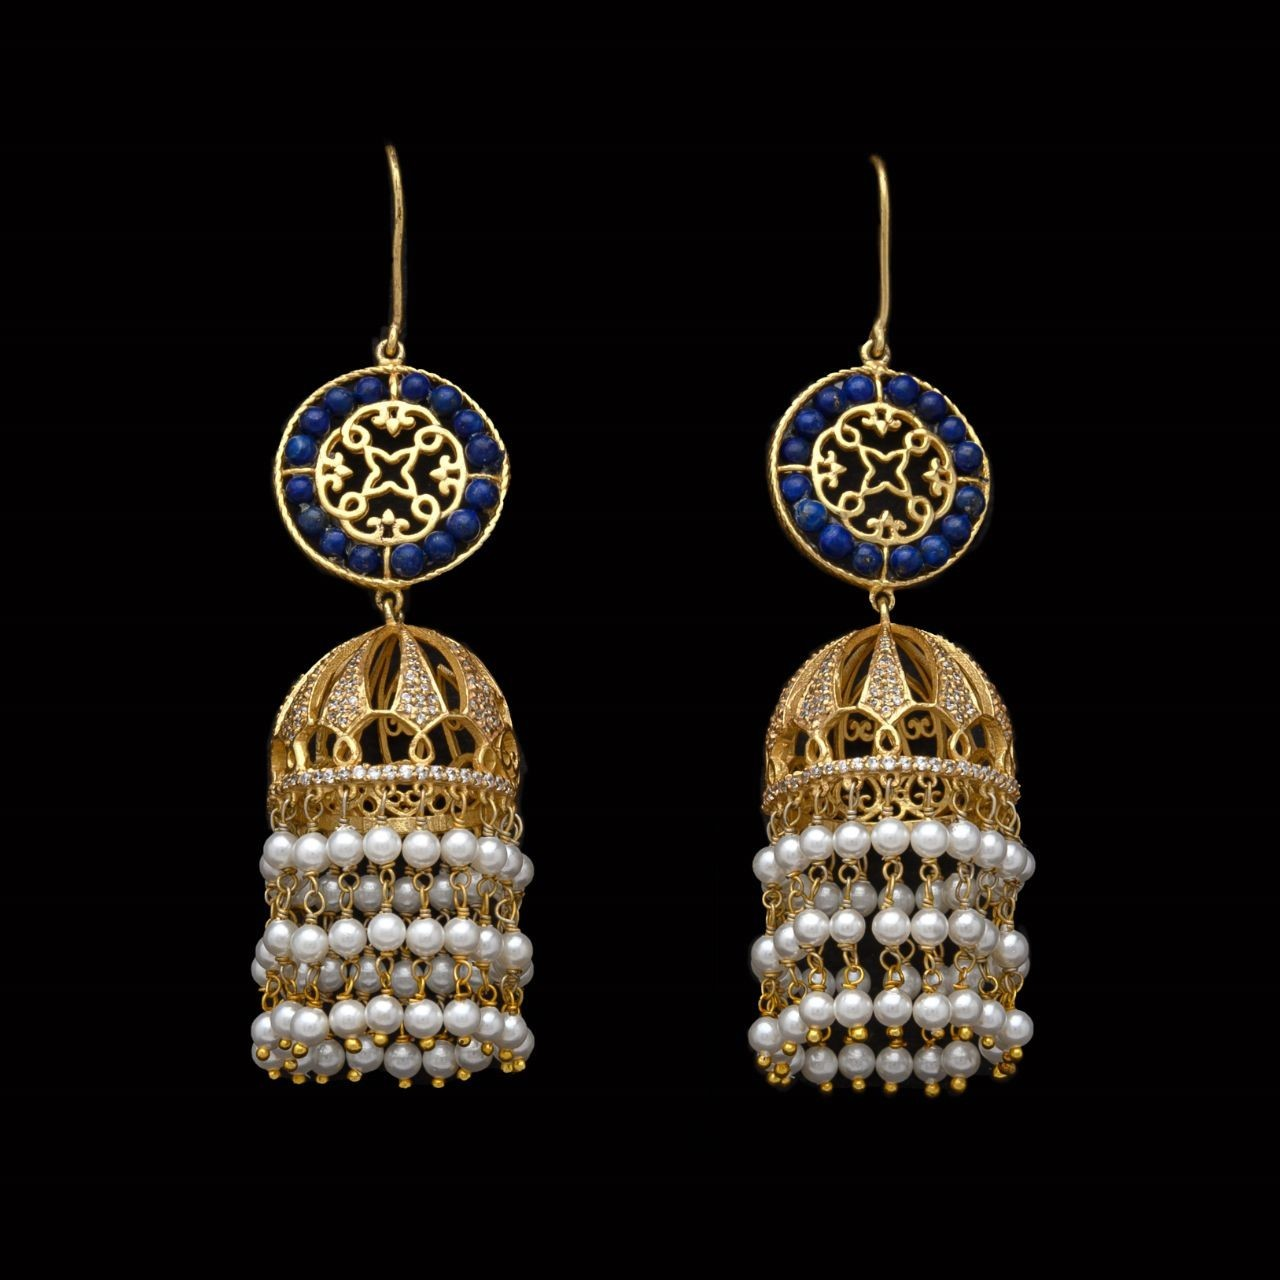 Shop best silver earrings with stone crafting at Mohmaya